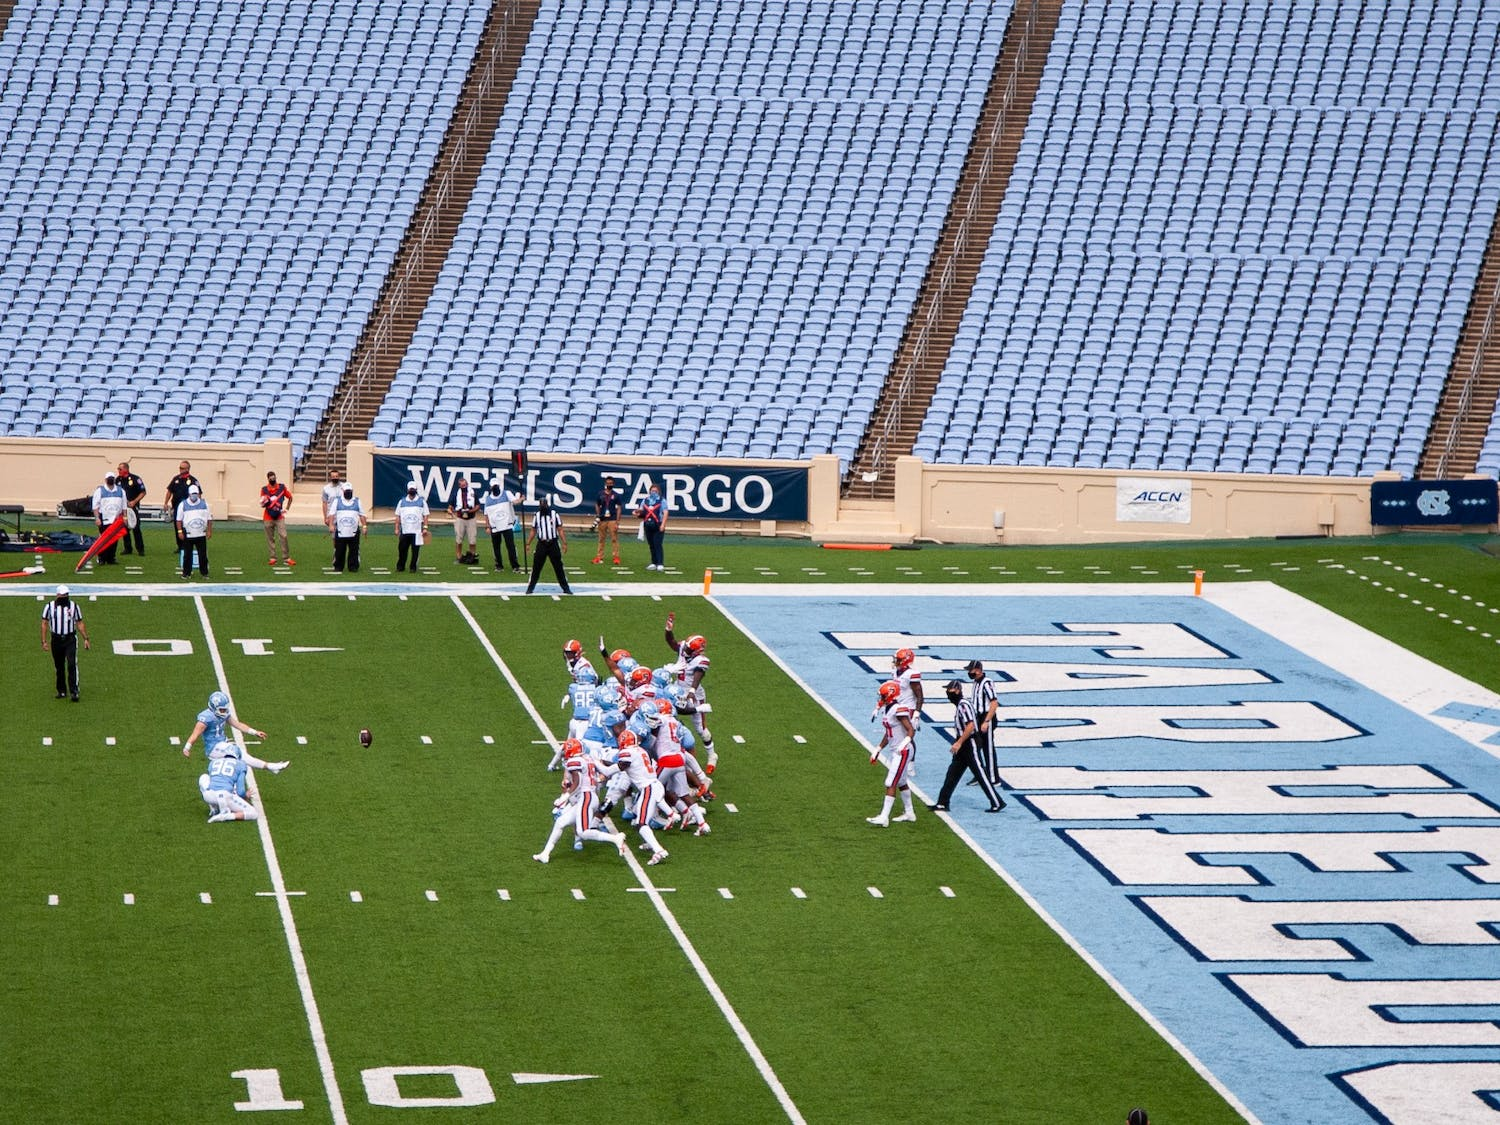 UNC graduate place kicker Grayson Atkins (17) makes a field goal attempt in an empty Kenan Memorial Stadium during a game against Syracuse on Saturday, Sept. 12, 2020. The game, which was played without fans due to the ongoing COVID-19 pandemic, ended with UNC besting Syracuse 31-6.